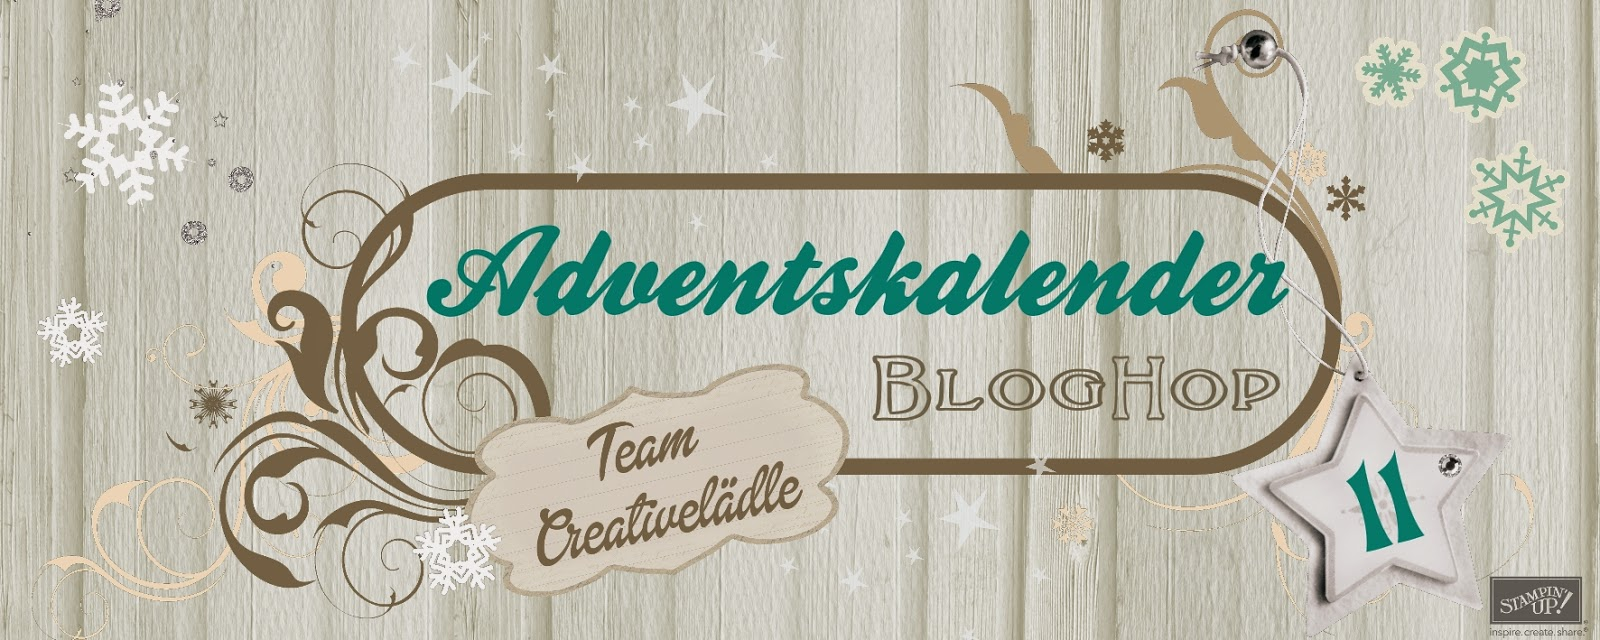 http://melburns-kreative-welt.blogspot.com/2014/12/adventskalender-blog-hop-tag-11_11.html